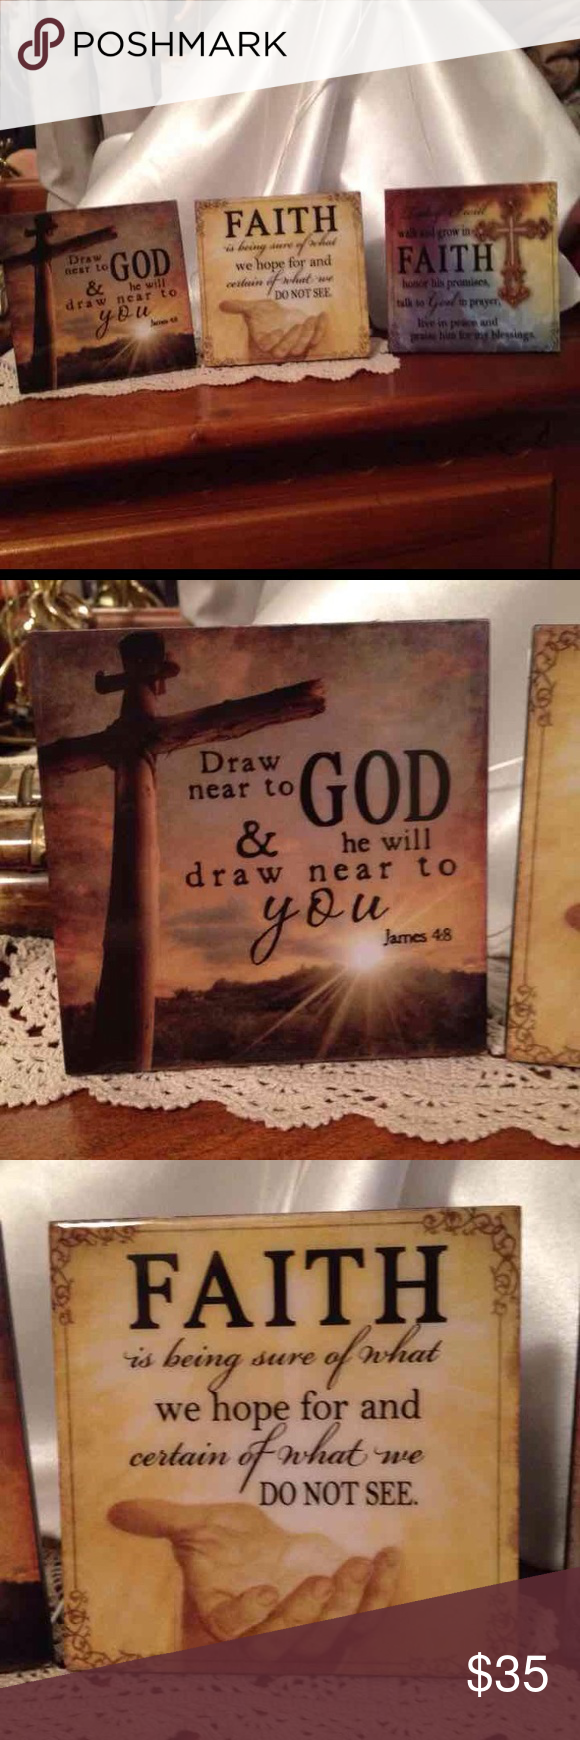 Biblical Christian Standup Plaques Set Of 3🎄🎁💒 Biblical Christian Standup Plaques Set Of 3 They are new with tag. Size 4 X 4. I shipped from a non-smoking home pet free. I ship within 24 to 48 hours Monday through Friday. If you have any questions please ask! You also may make me a offer! :)) Christian Dior Other